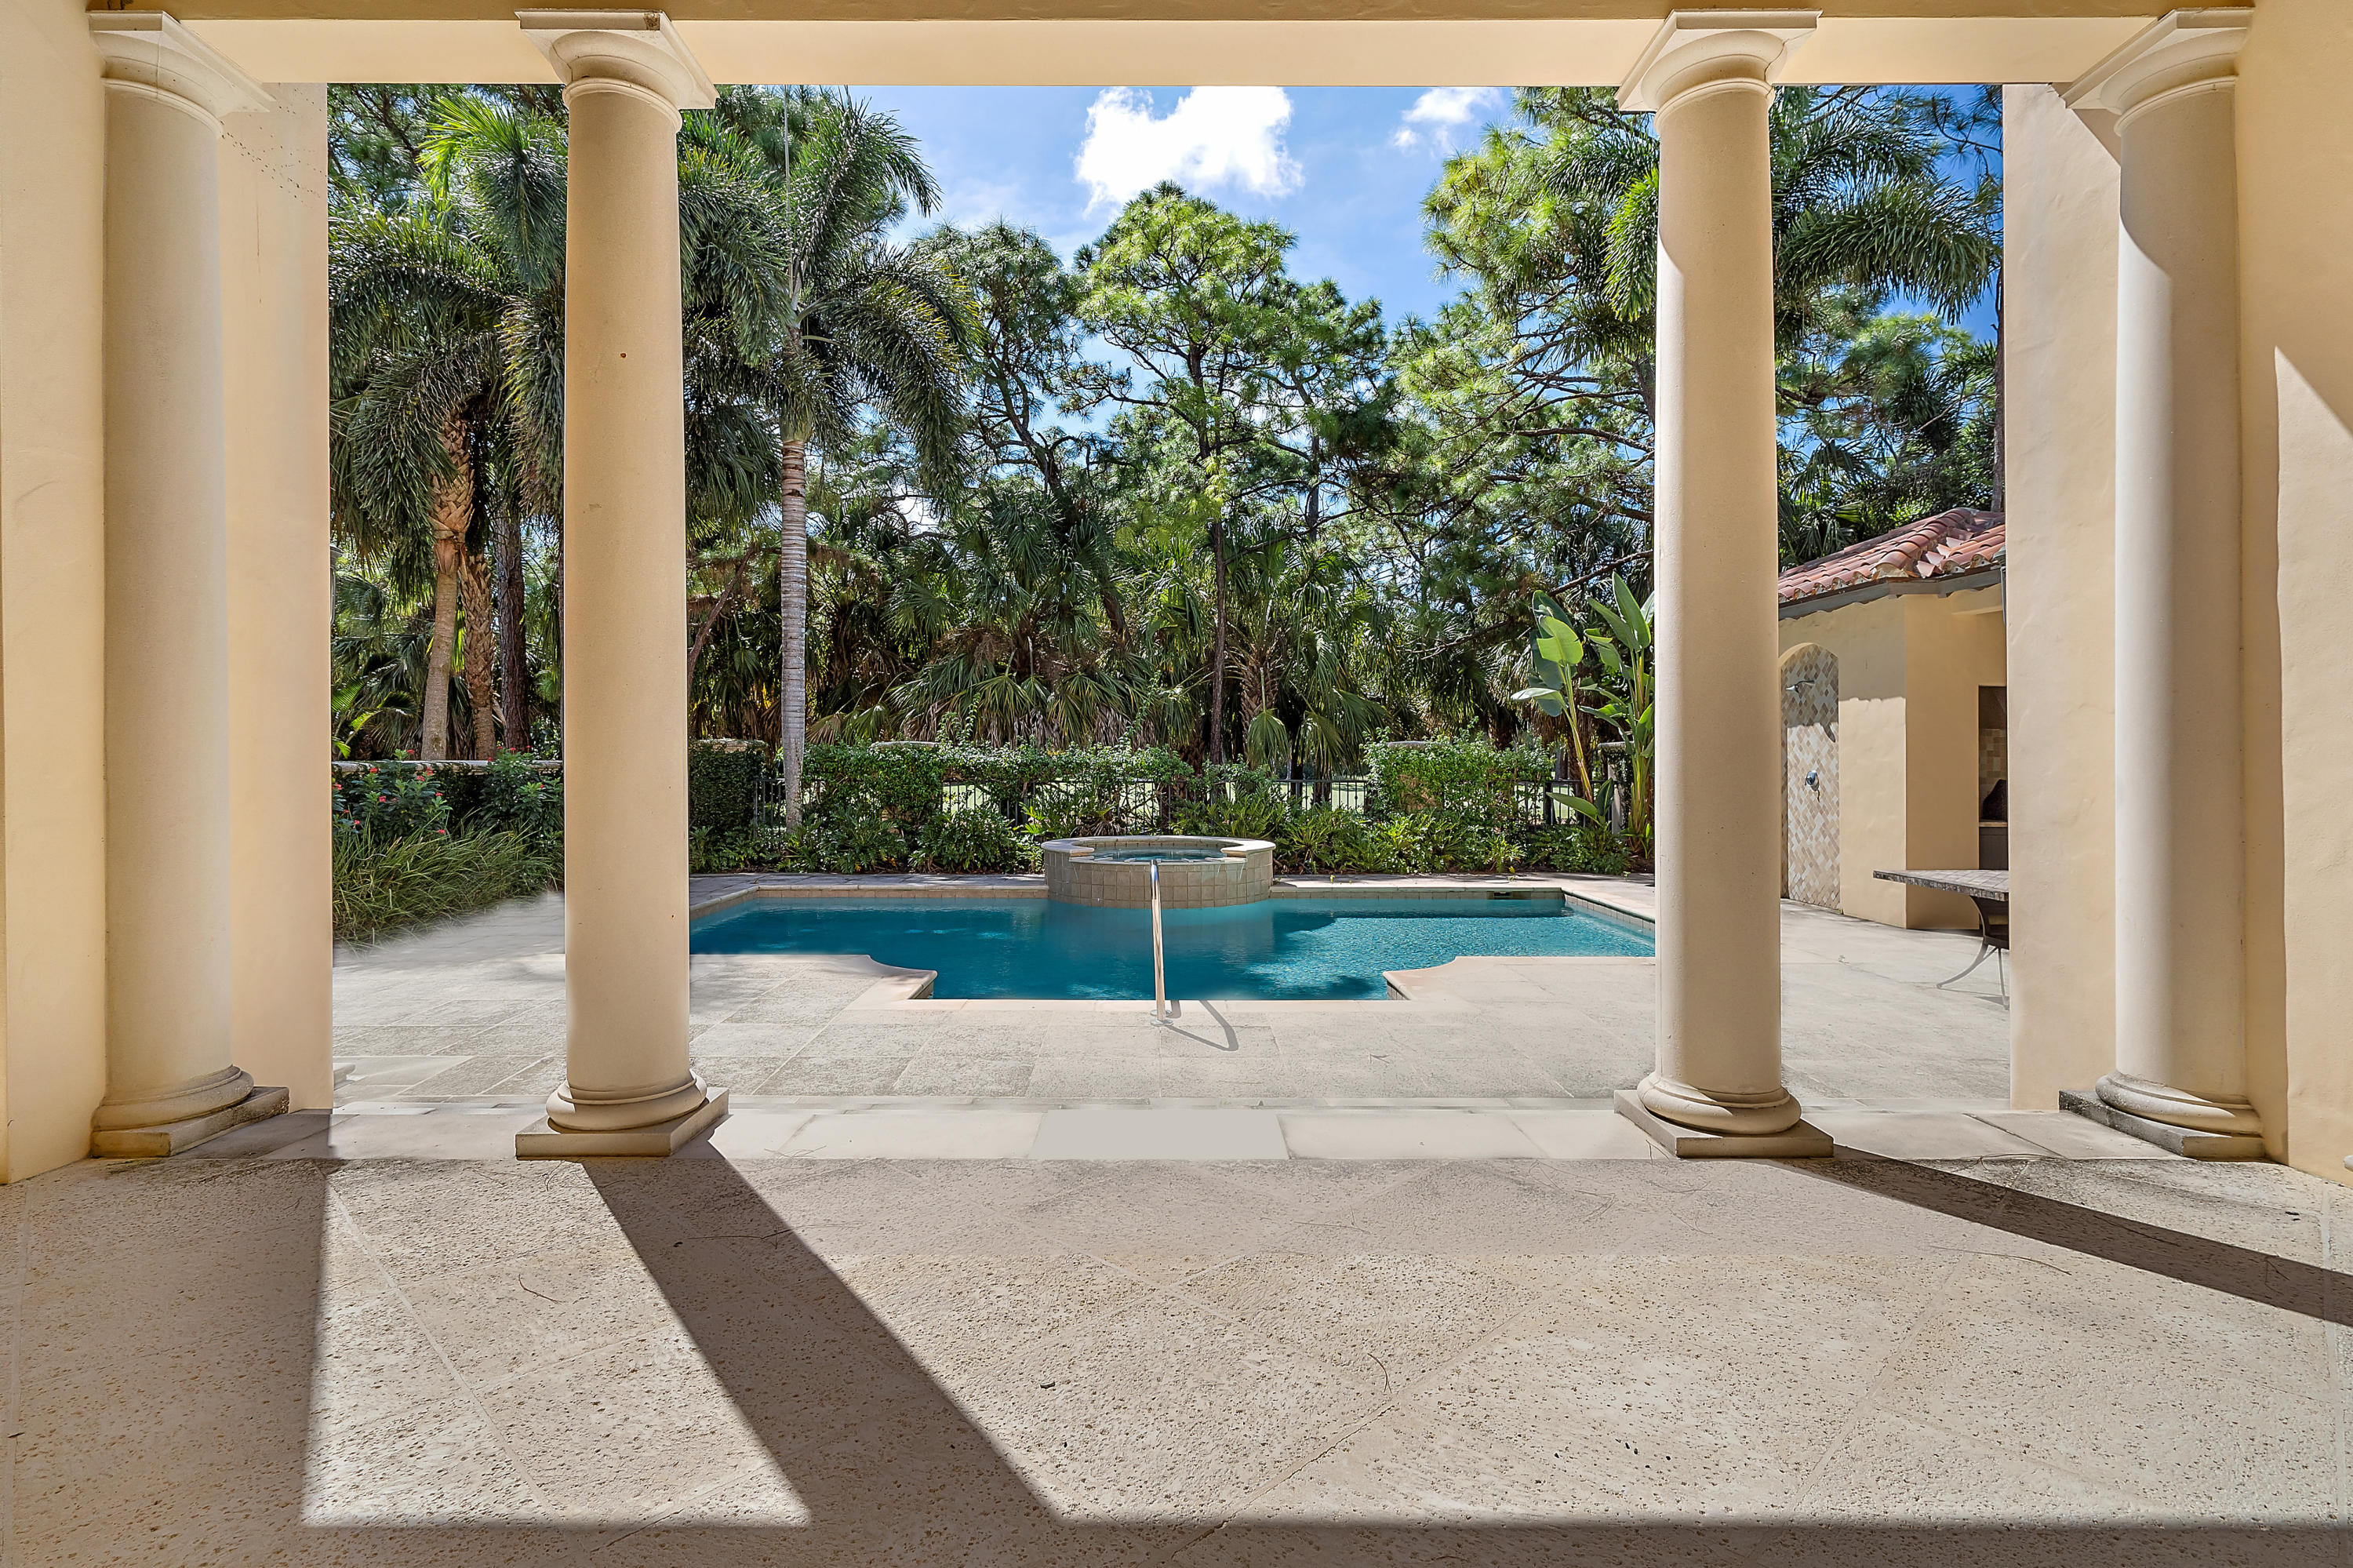 New Home for sale at 510 Bald Eagle Drive in Jupiter